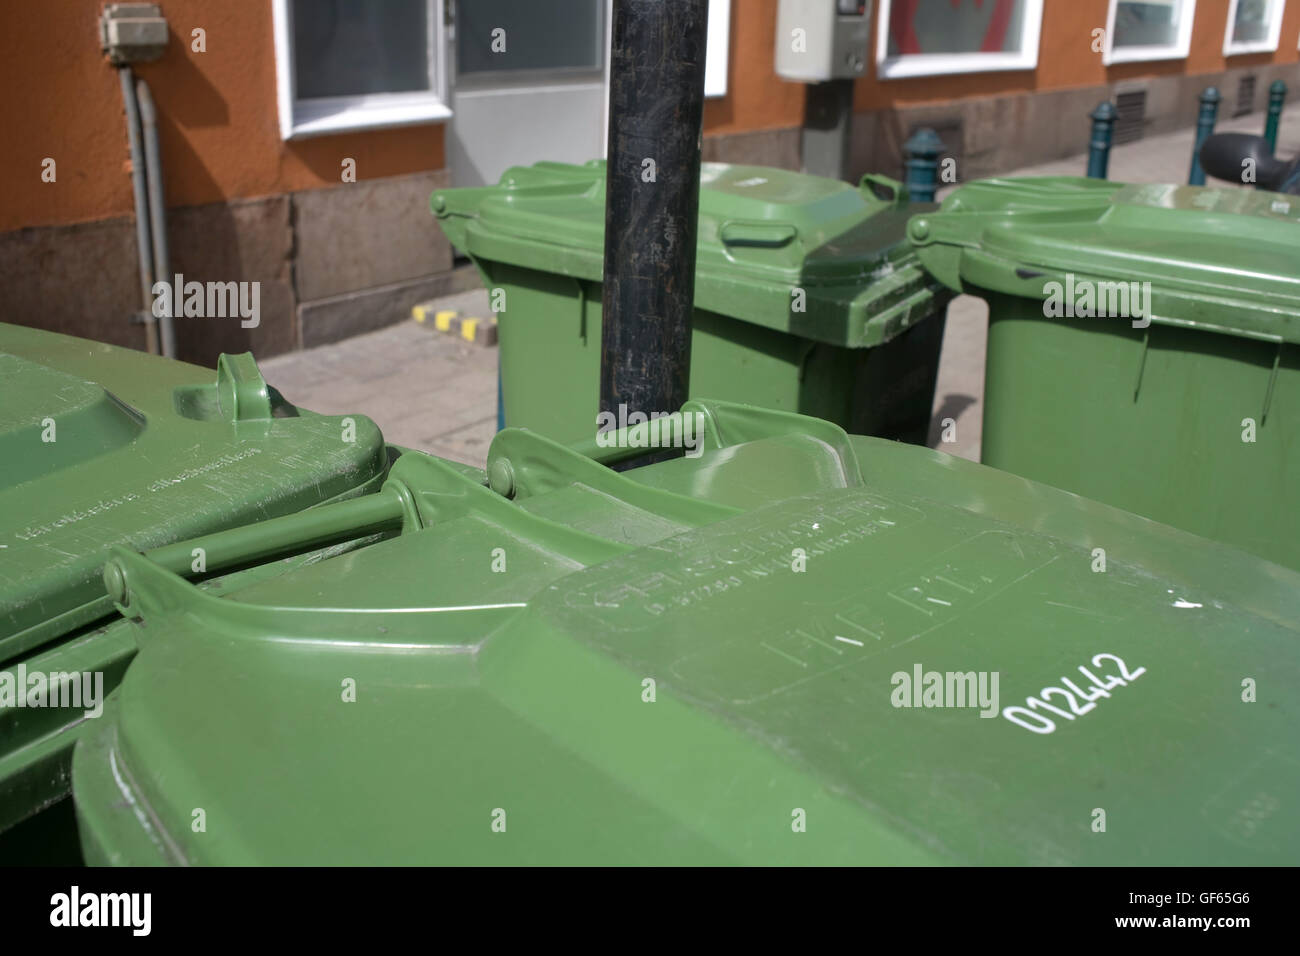 Green rubbish bins on Tompa Utca - Stock Image